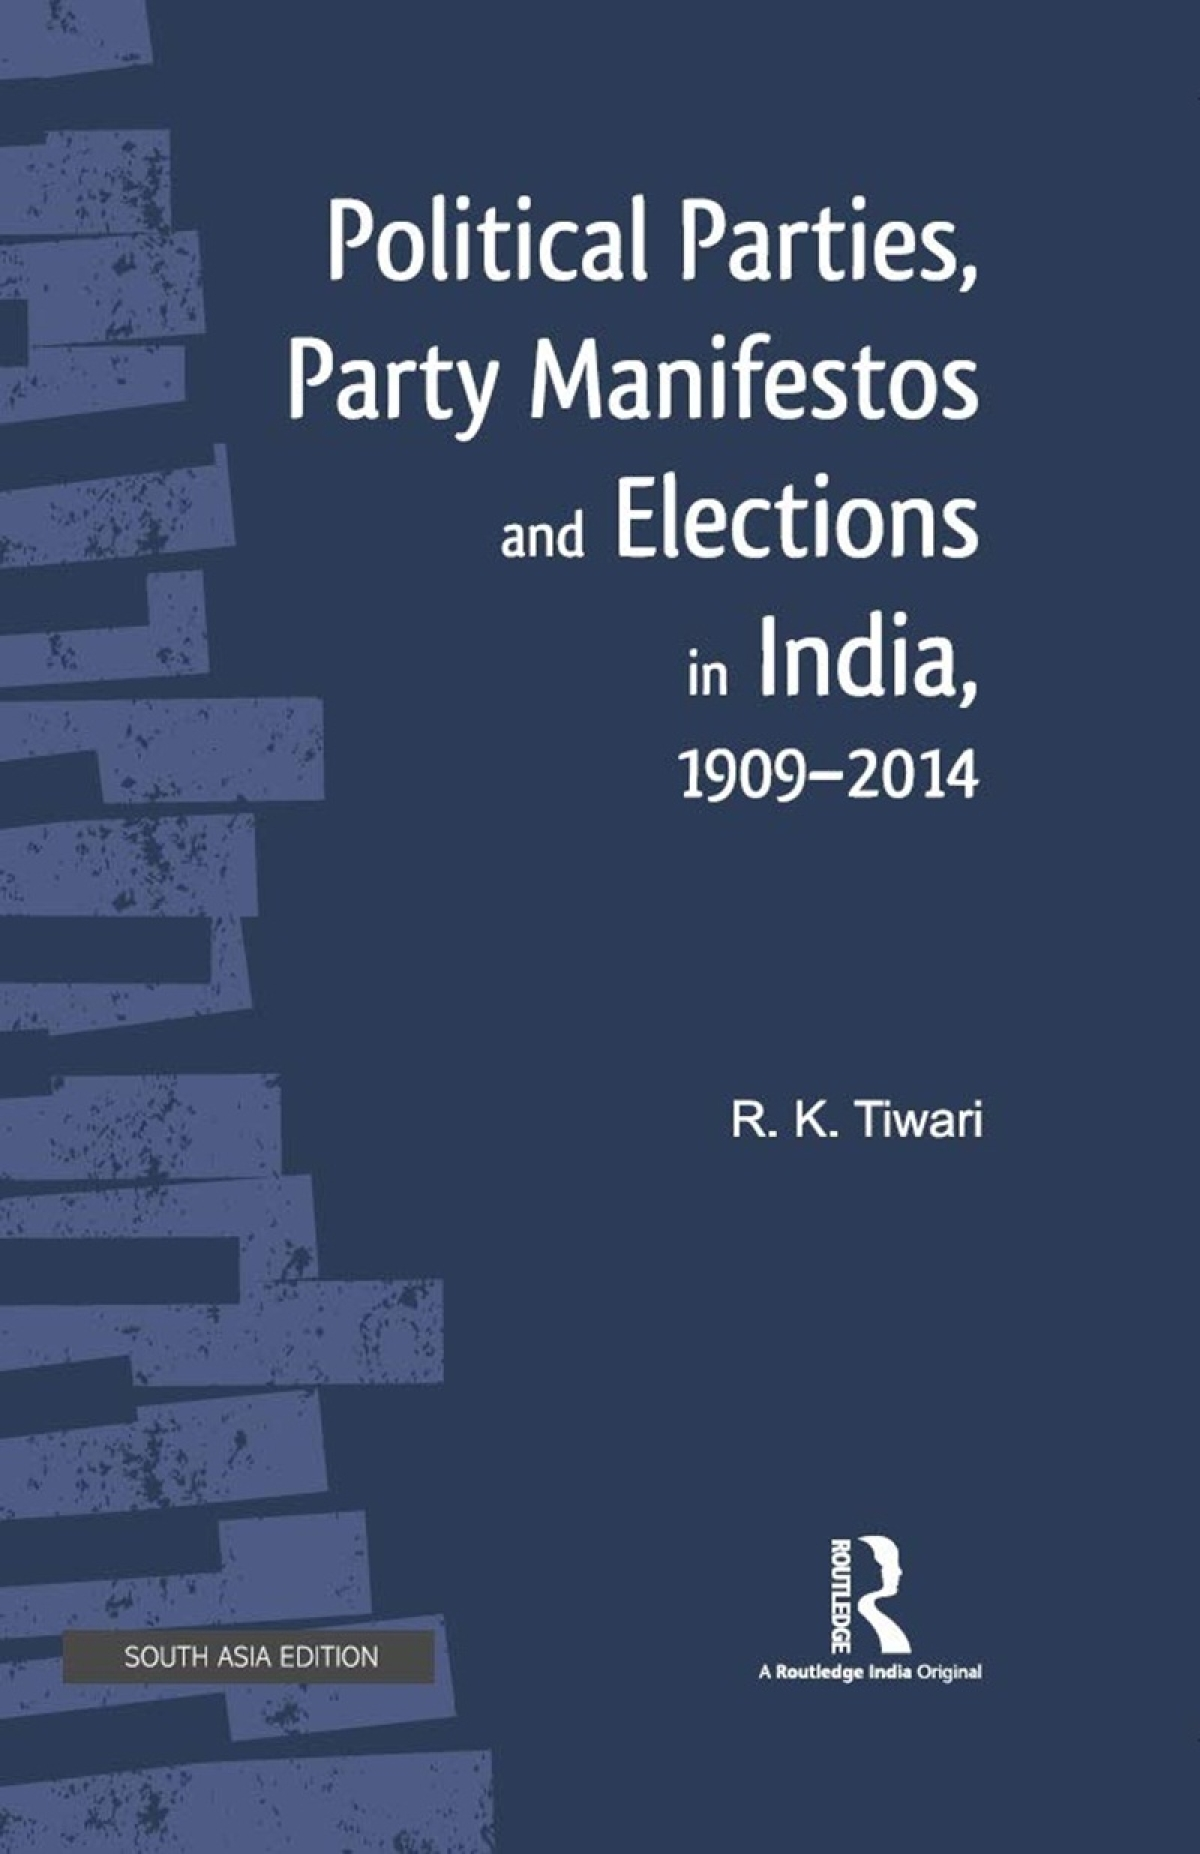 Political Parties, Party Manifestos and Elections in India, 1909-2014 by R K Tiwari – Review